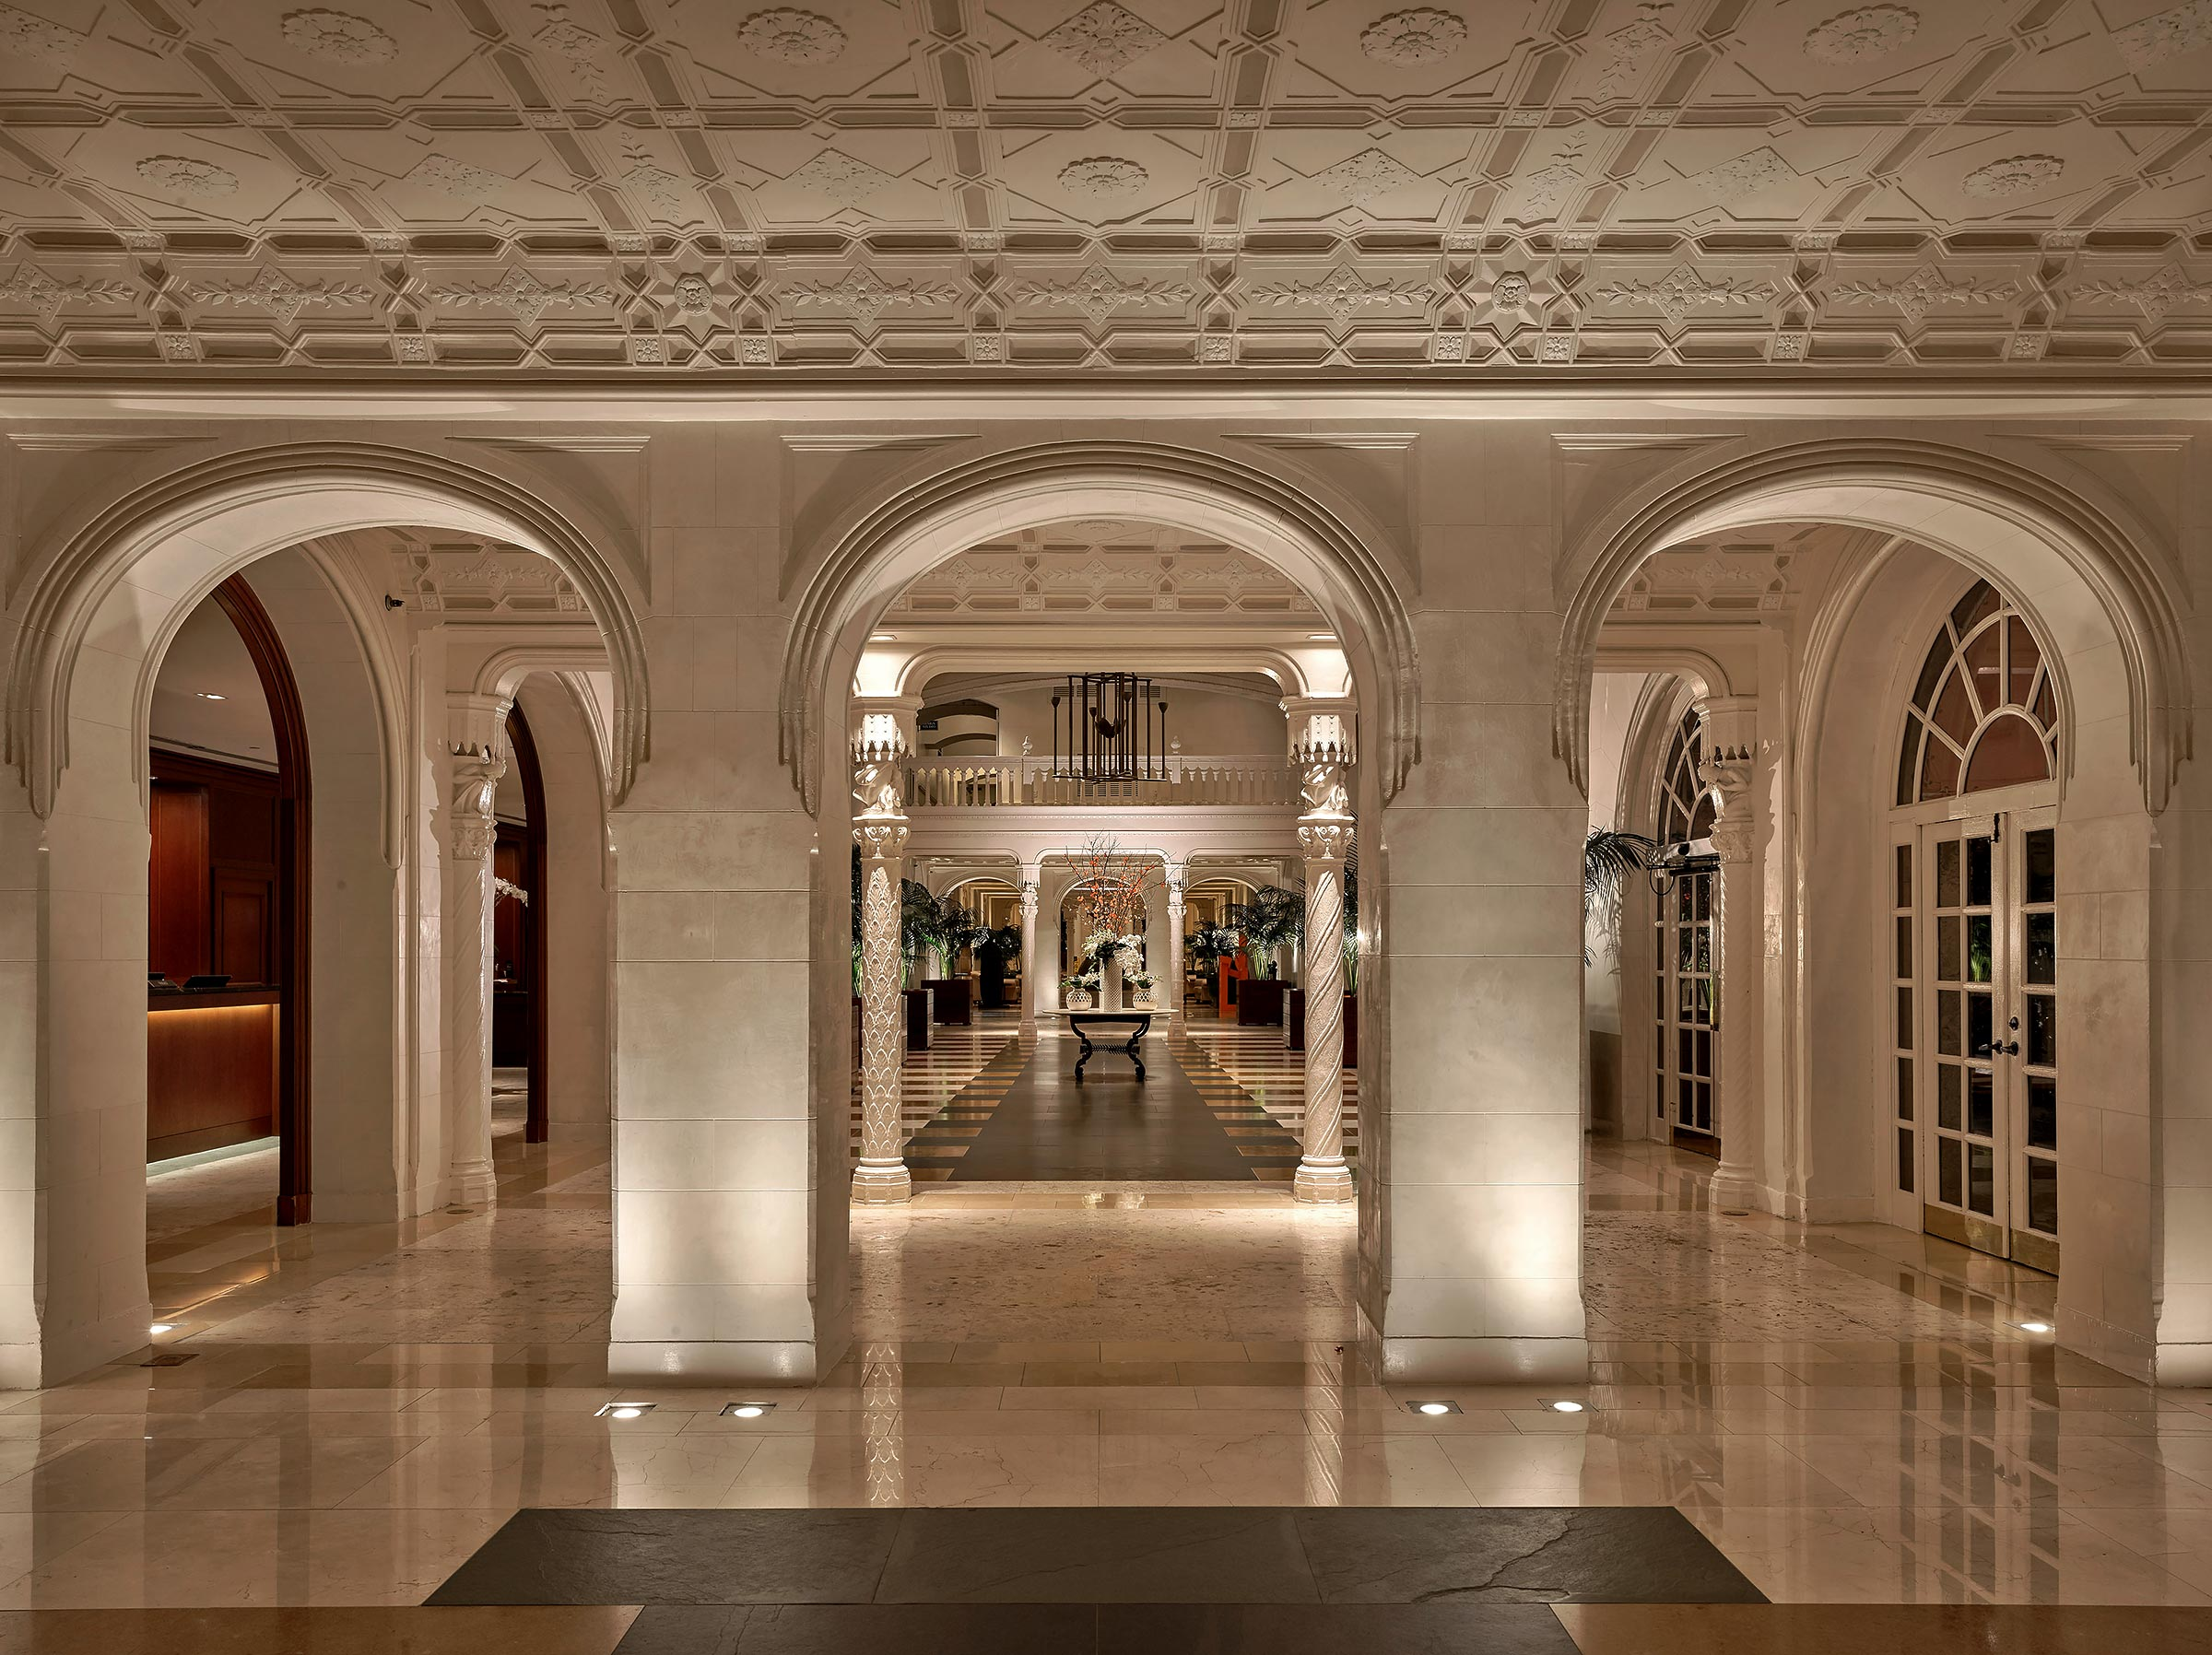 Boca-Raton-Resort-Main-Lobby-Architecture